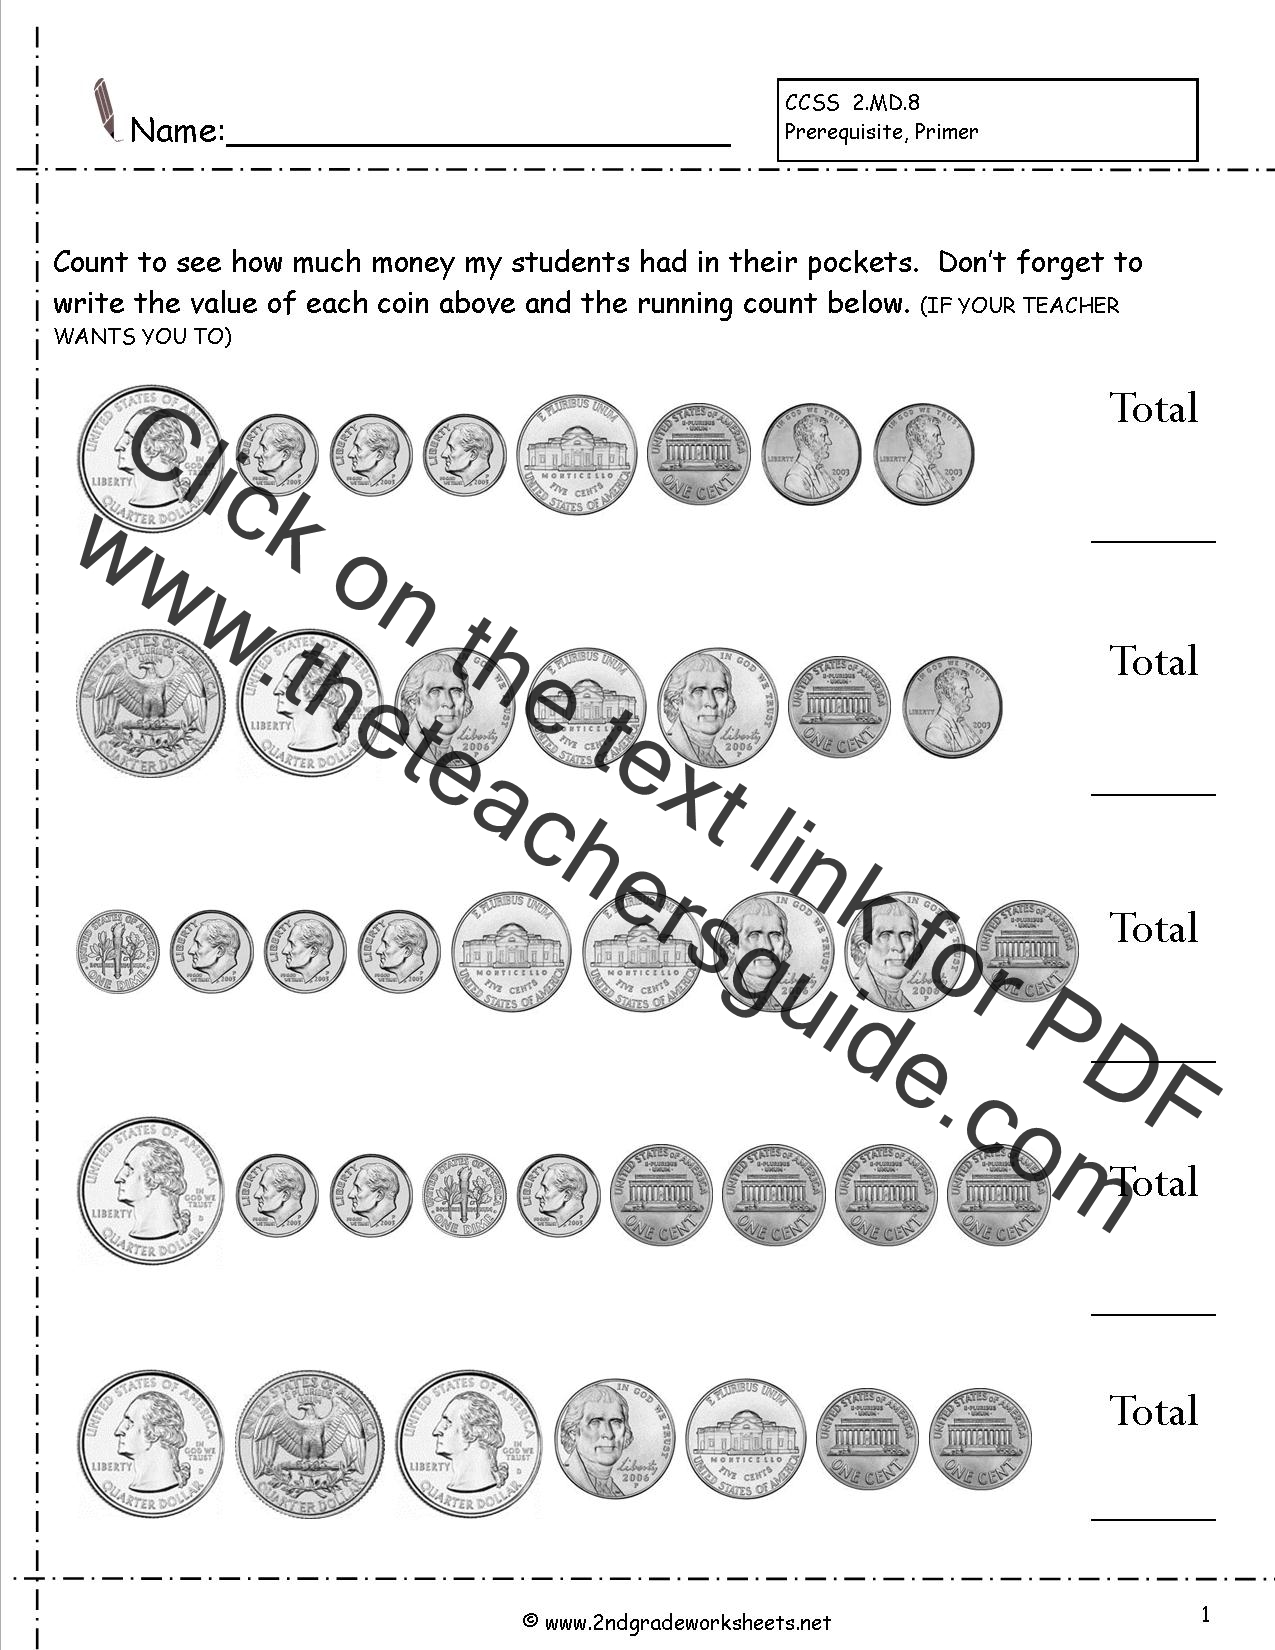 Matching Groups of Coins Worksheet - Turtle Diary